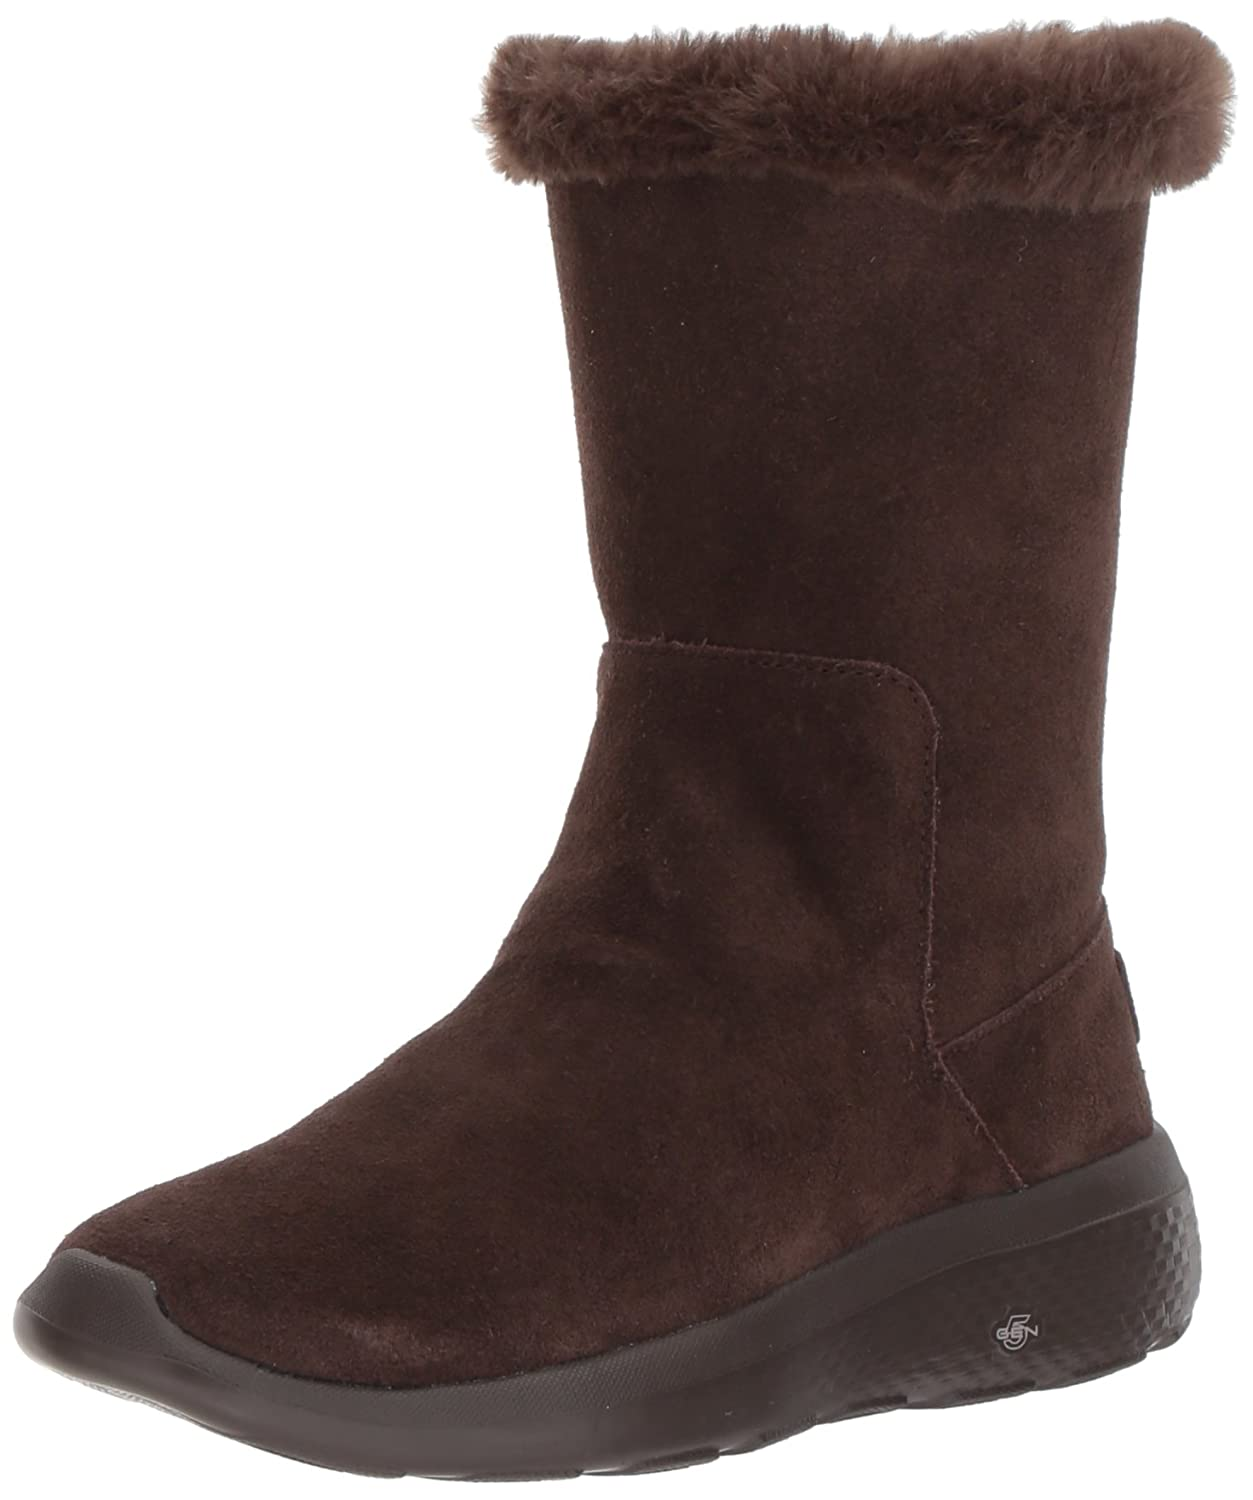 Skechers On-The-Go City 2, Botas para Mujer38 EU|Marrón (Chocolate)